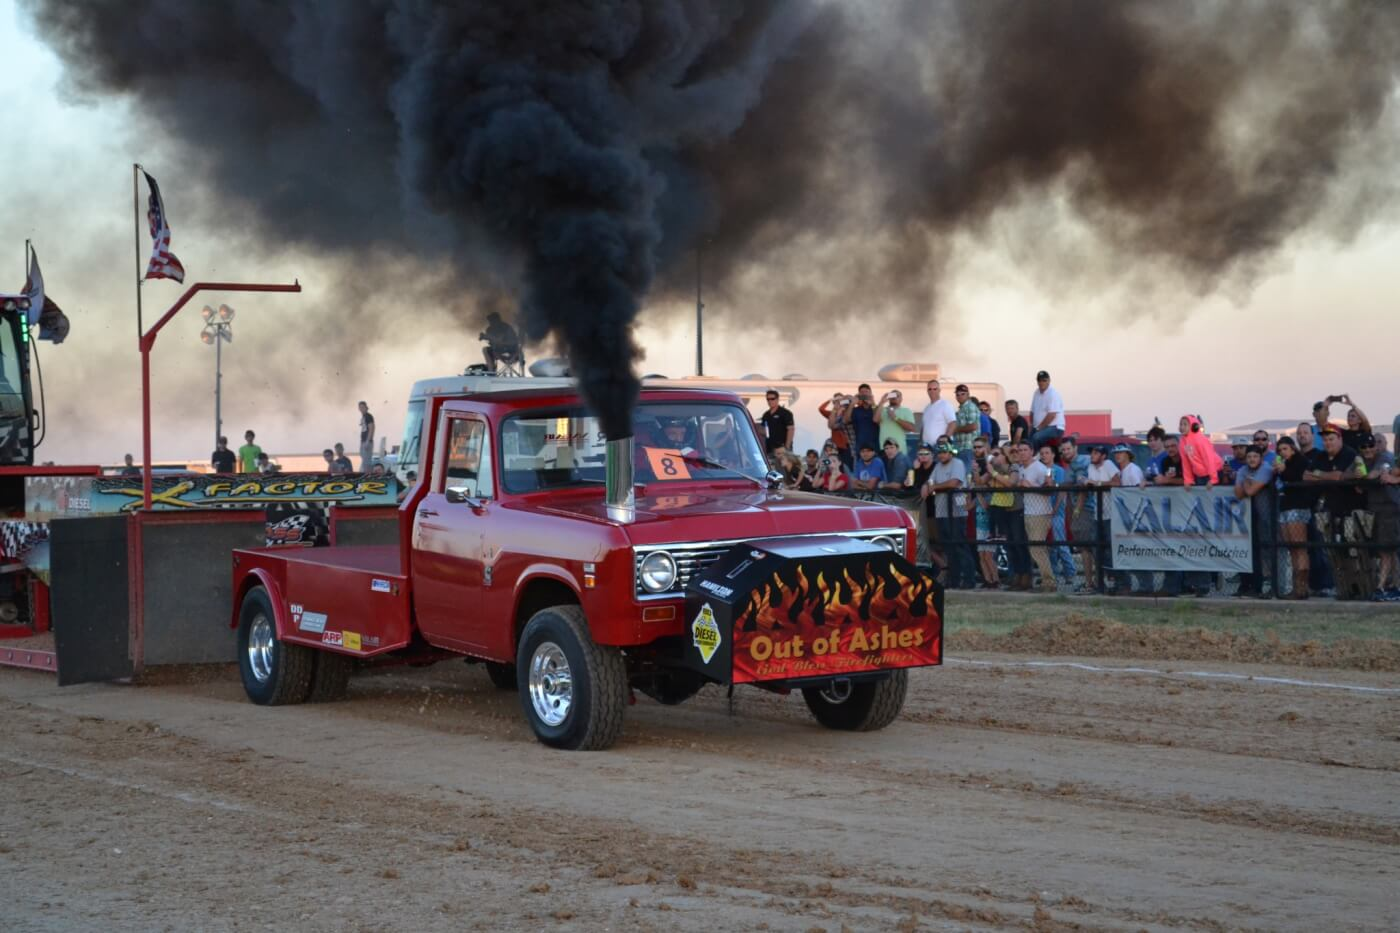 You never know what you're going to see at the World Finals, as competitors come out of the woodwork for this Texas-based event. This diesel-powered International puller was towards the back of the pack in the competition, but a crowd favorite.